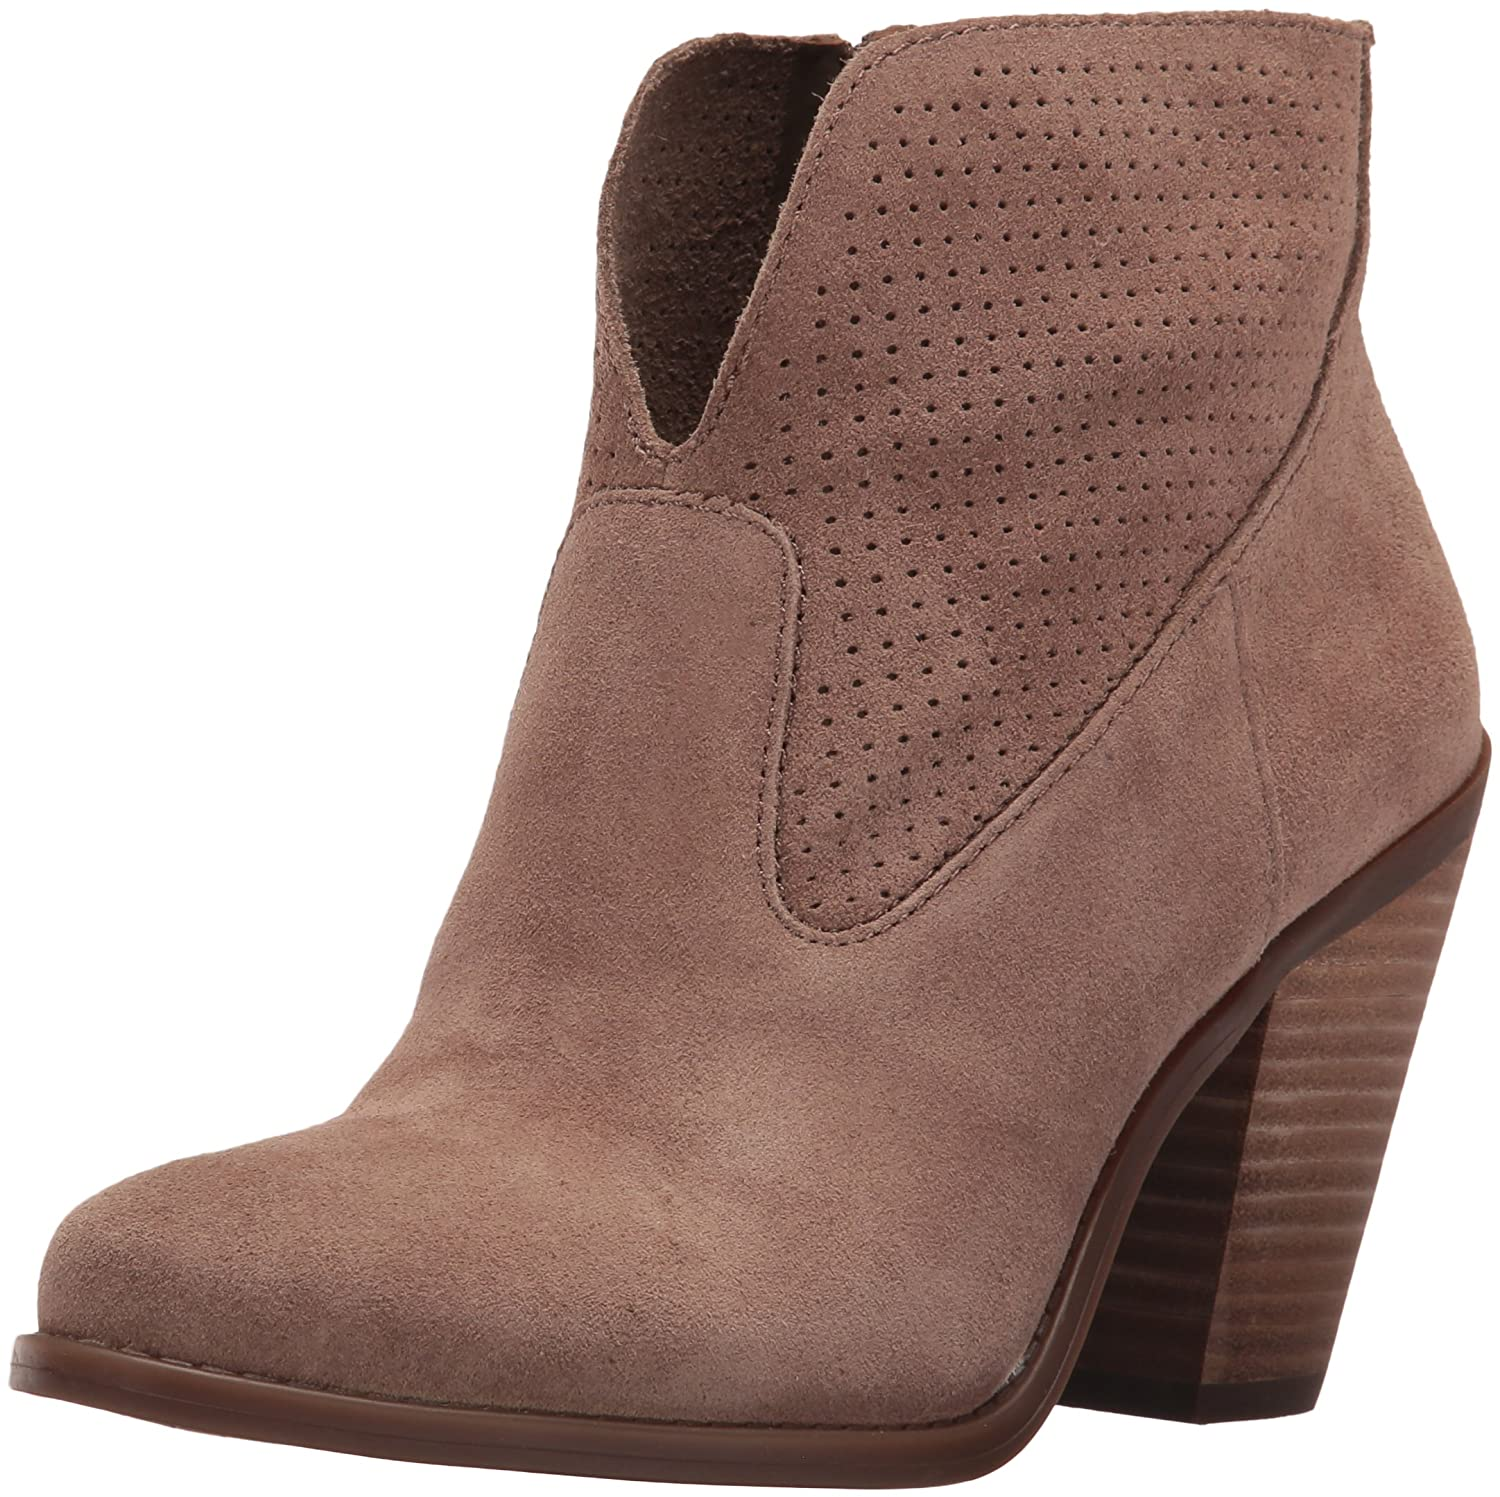 Jessica Simpson Women's Caderian Ankle Bootie B01IAHBEOA 10 B(M) US|Warm Taupe